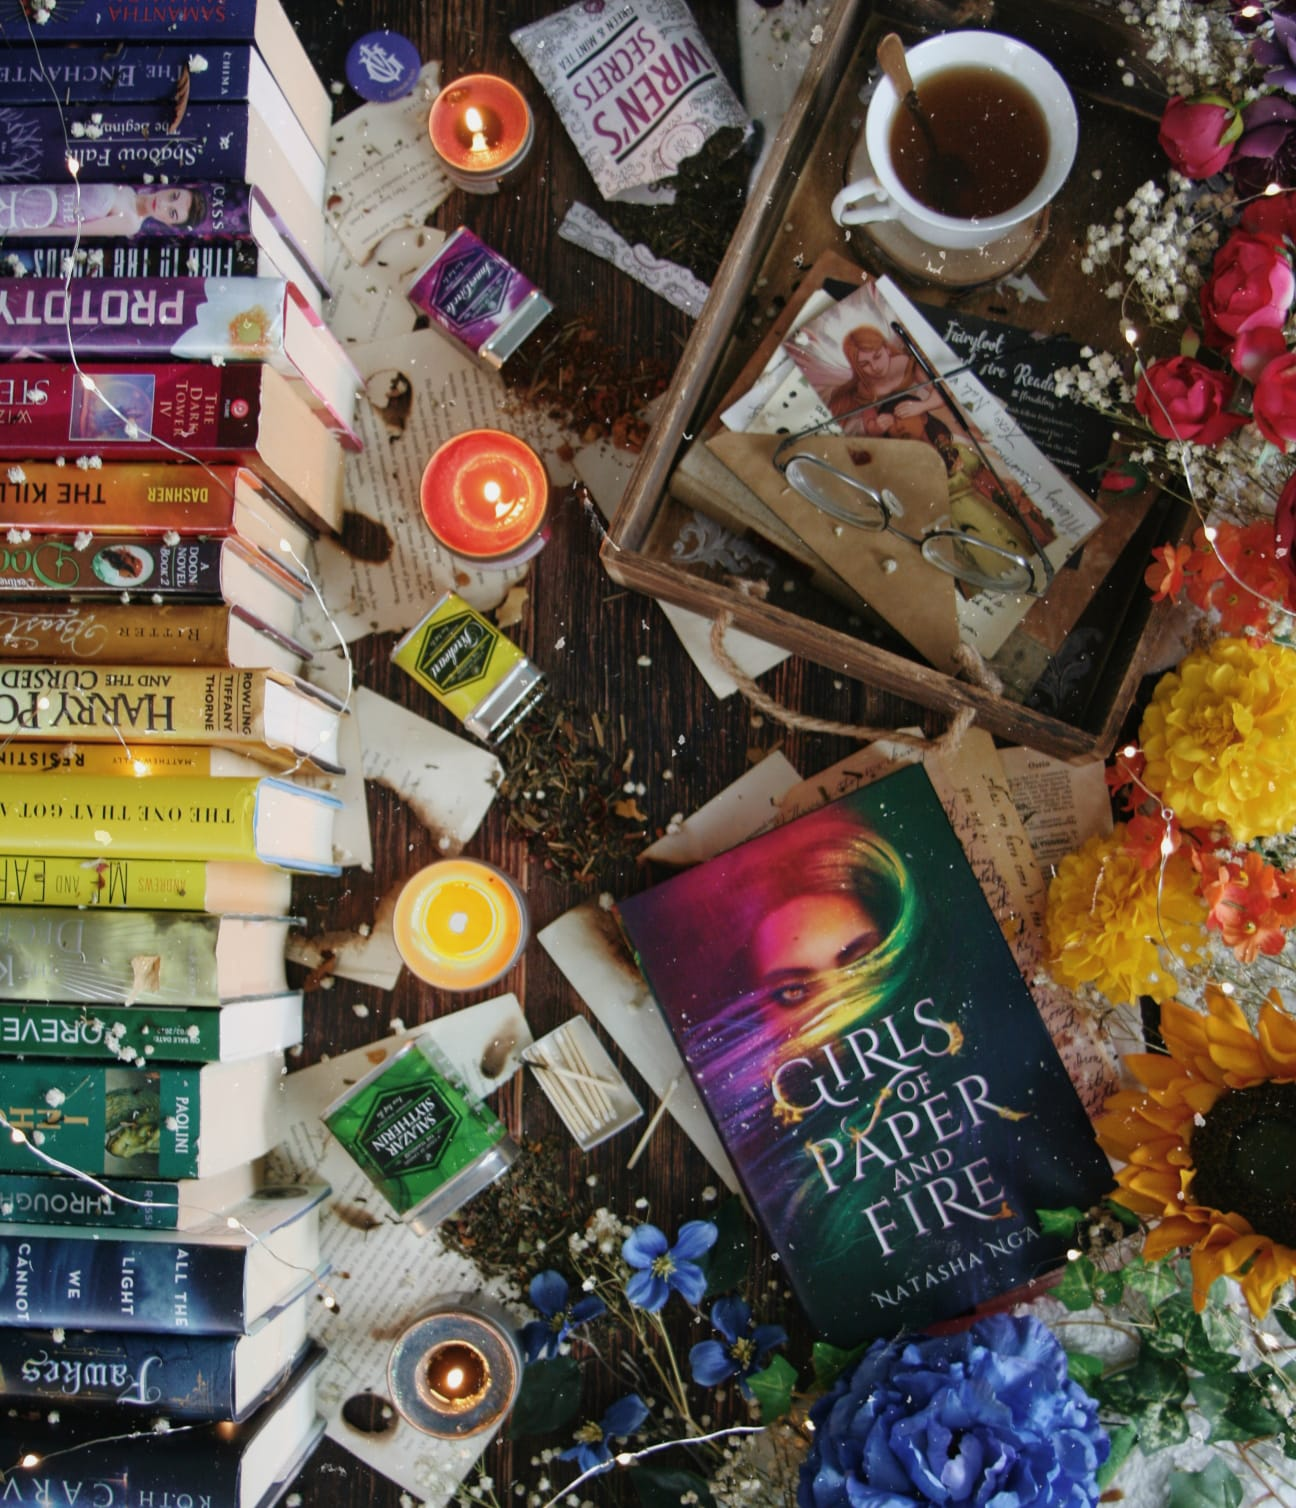 Girls of Paper and Fire Readalong: Day 2